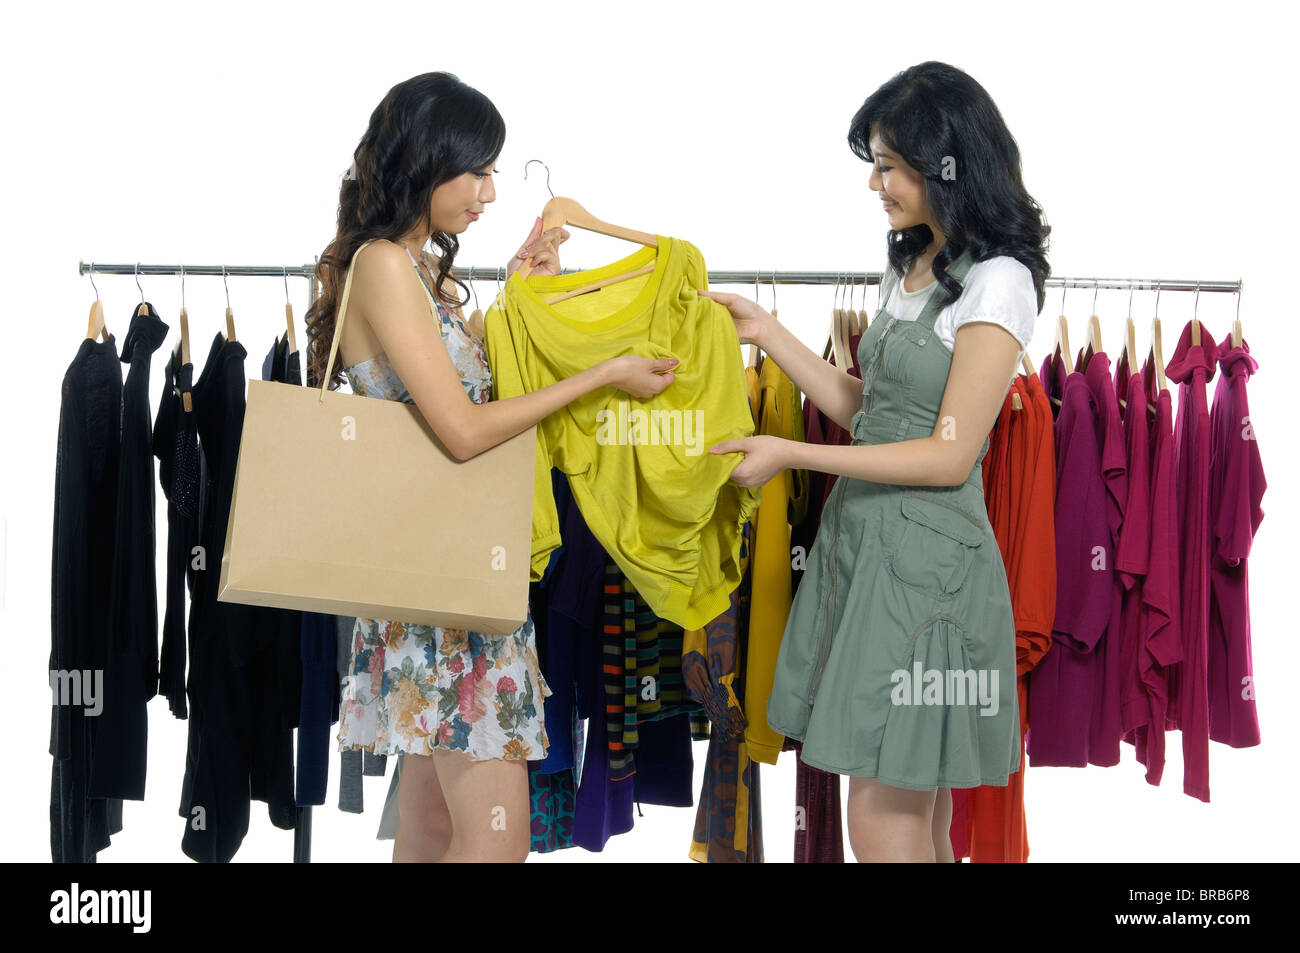 Women choosing clothes in a clothing store - Stock Image